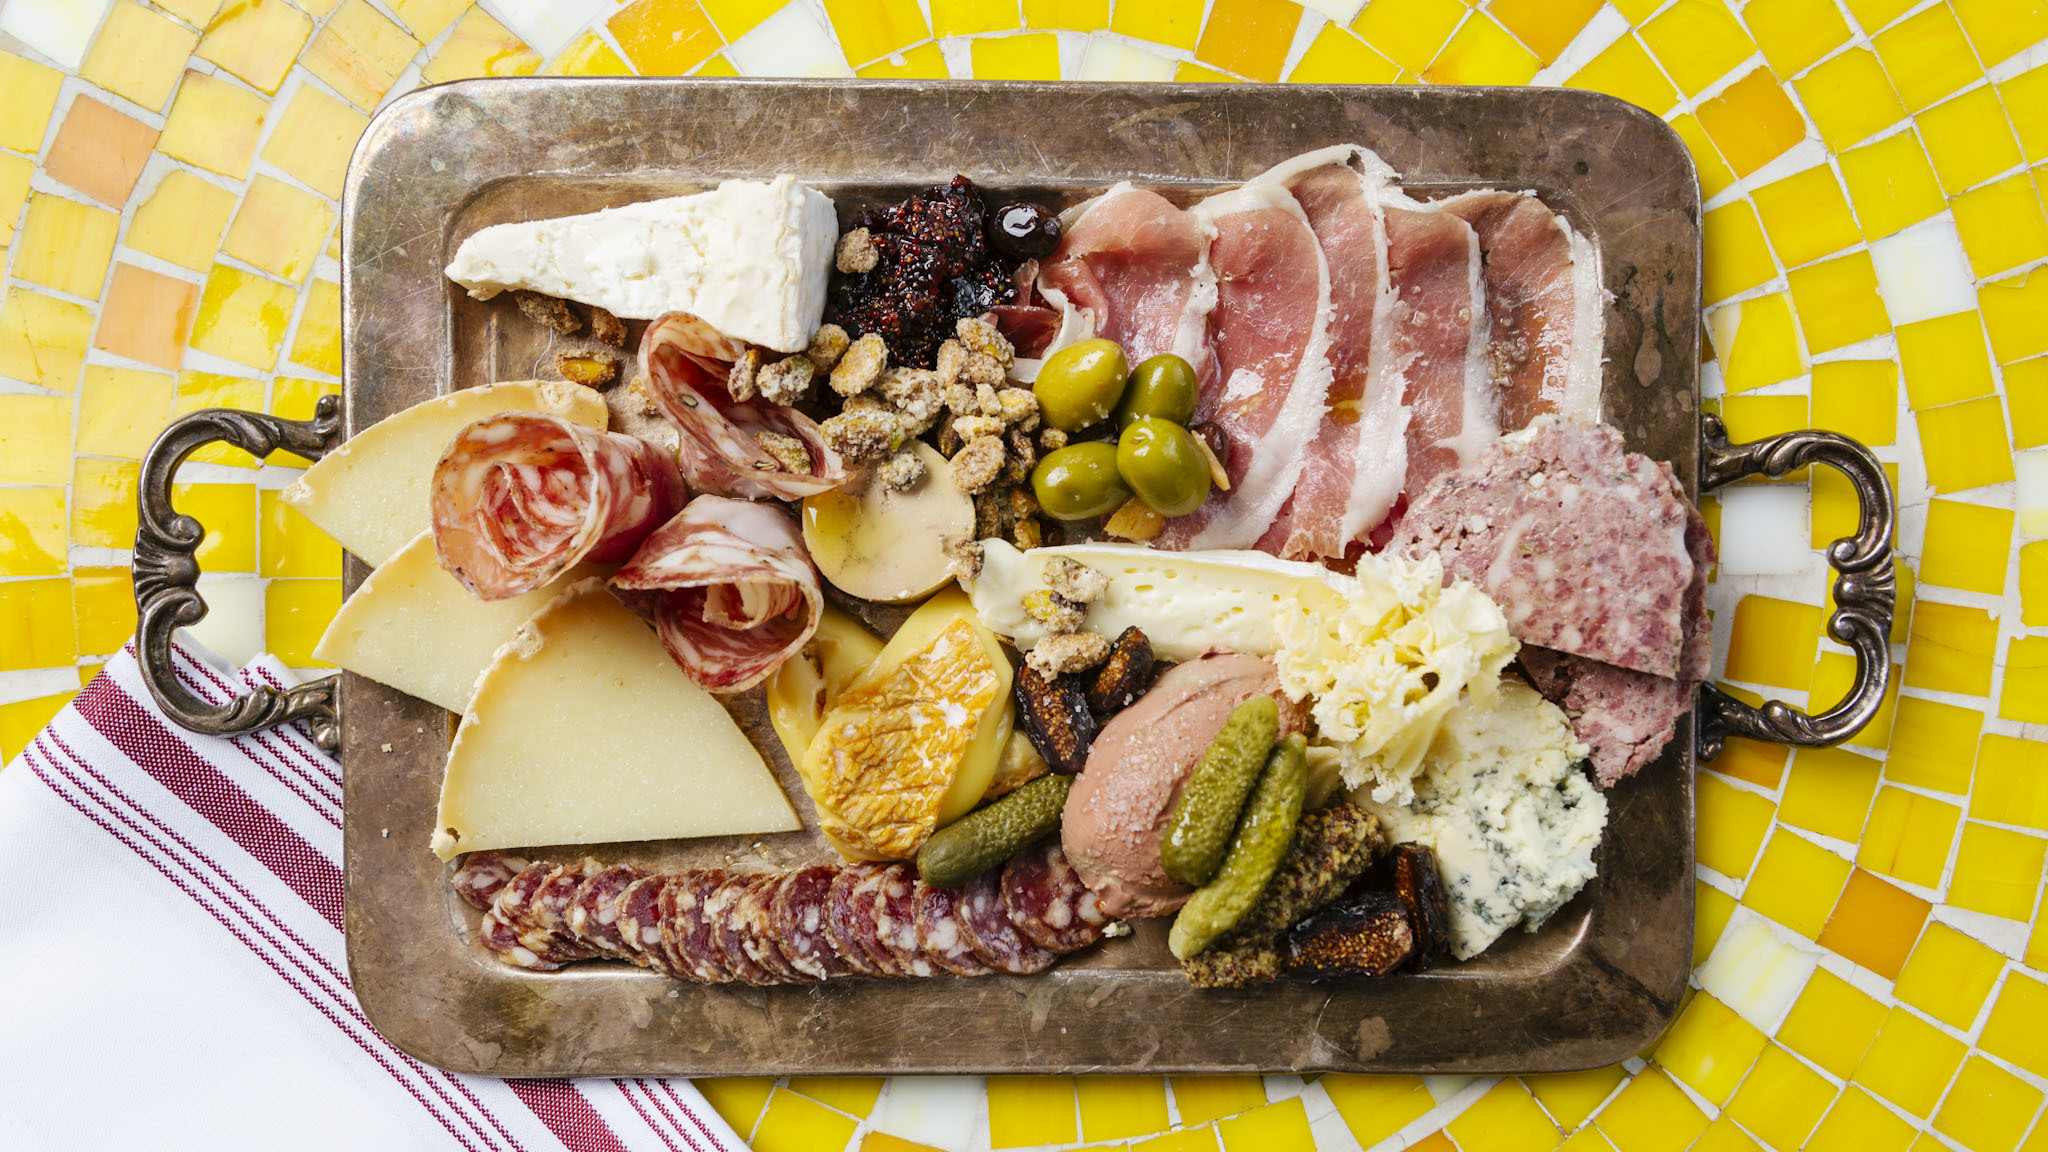 The best cheese and charcuterie plates in Chicago